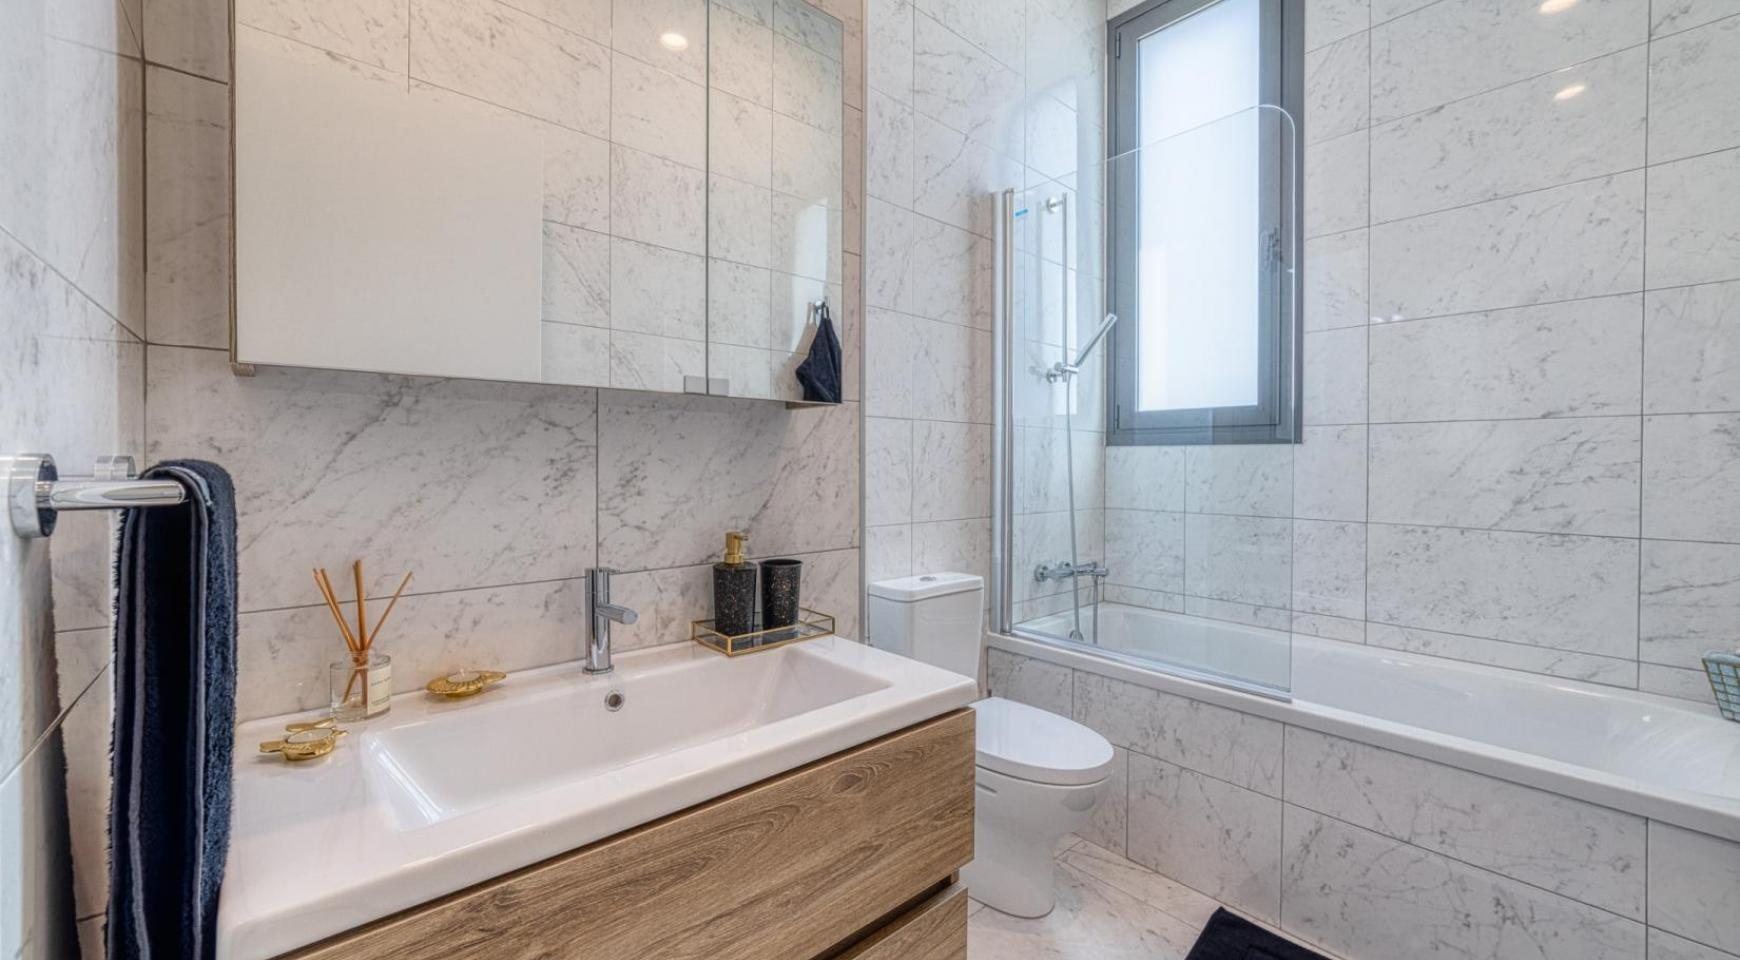 Urban City Residences, Apt. B 101. 3 Bedroom Apartment within a New Complex in the City Centre - 38